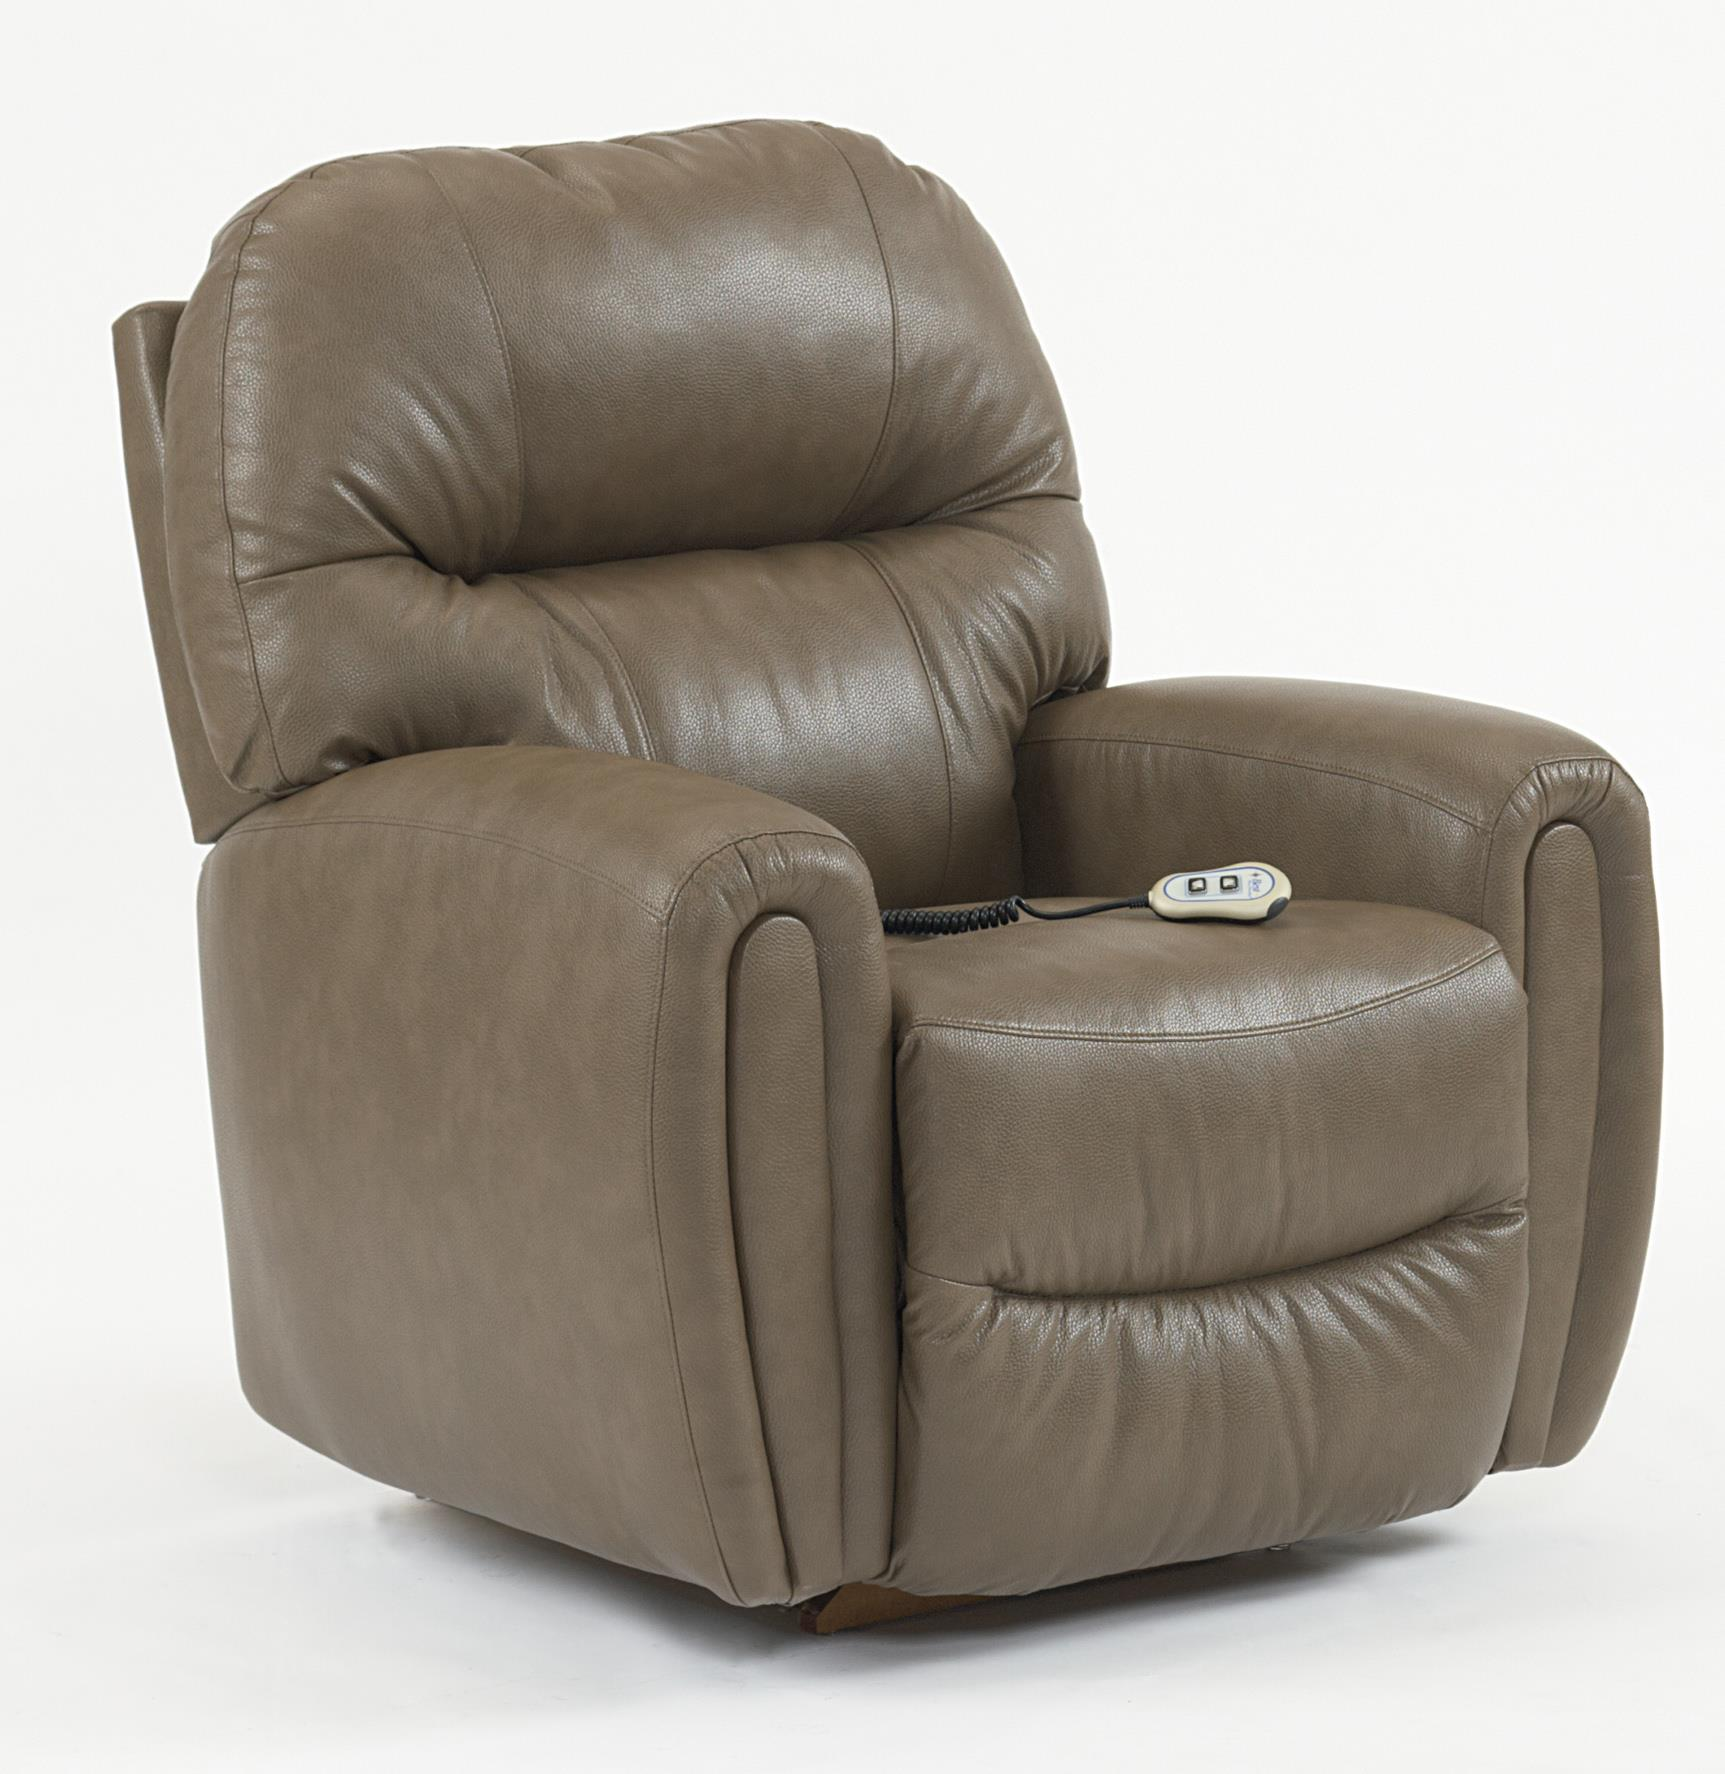 Recliners medium markson power lift recliner with dome for 2 arm pressback chaise